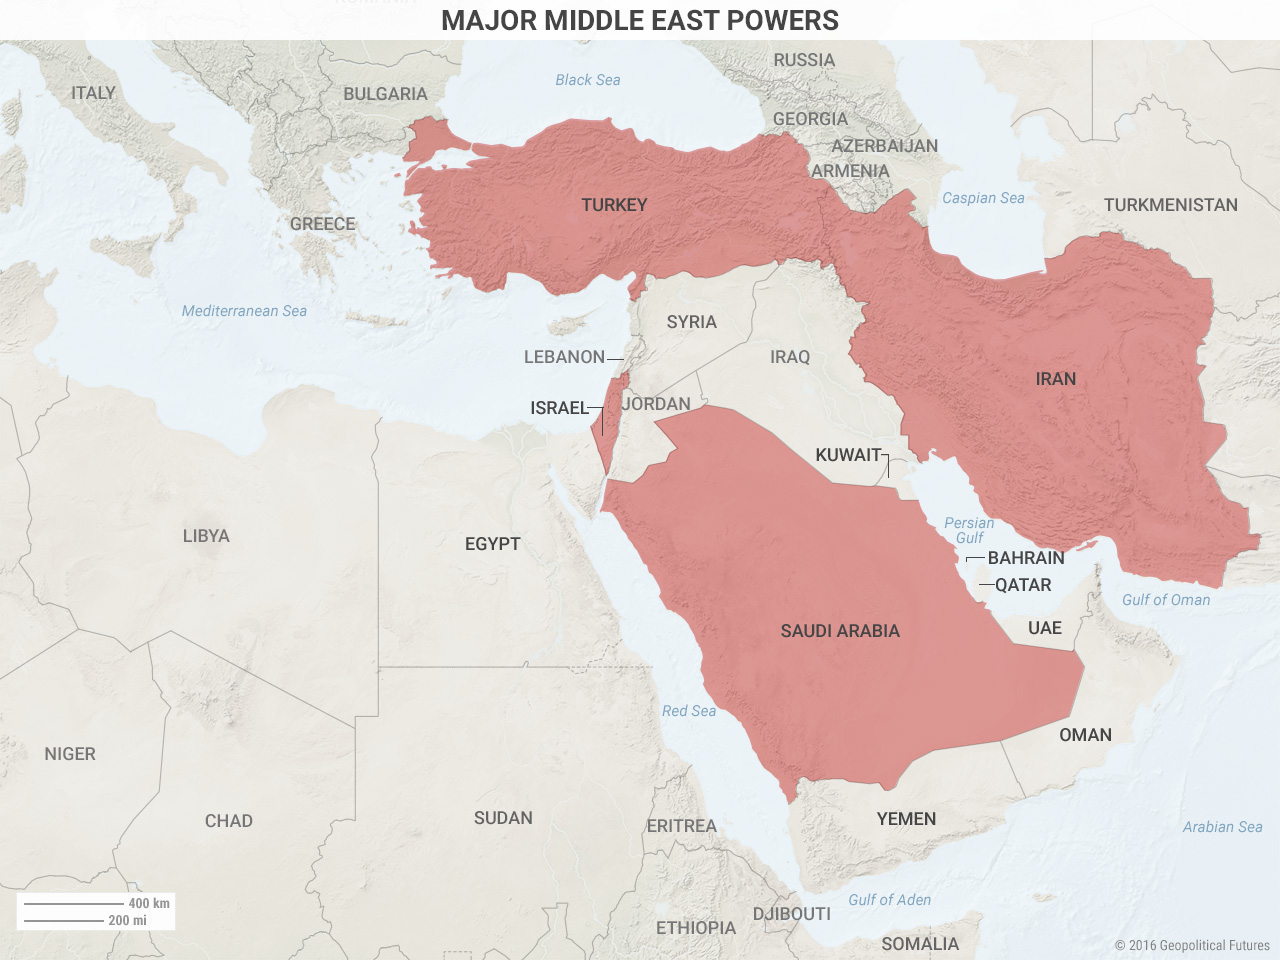 Major Middle East Powers